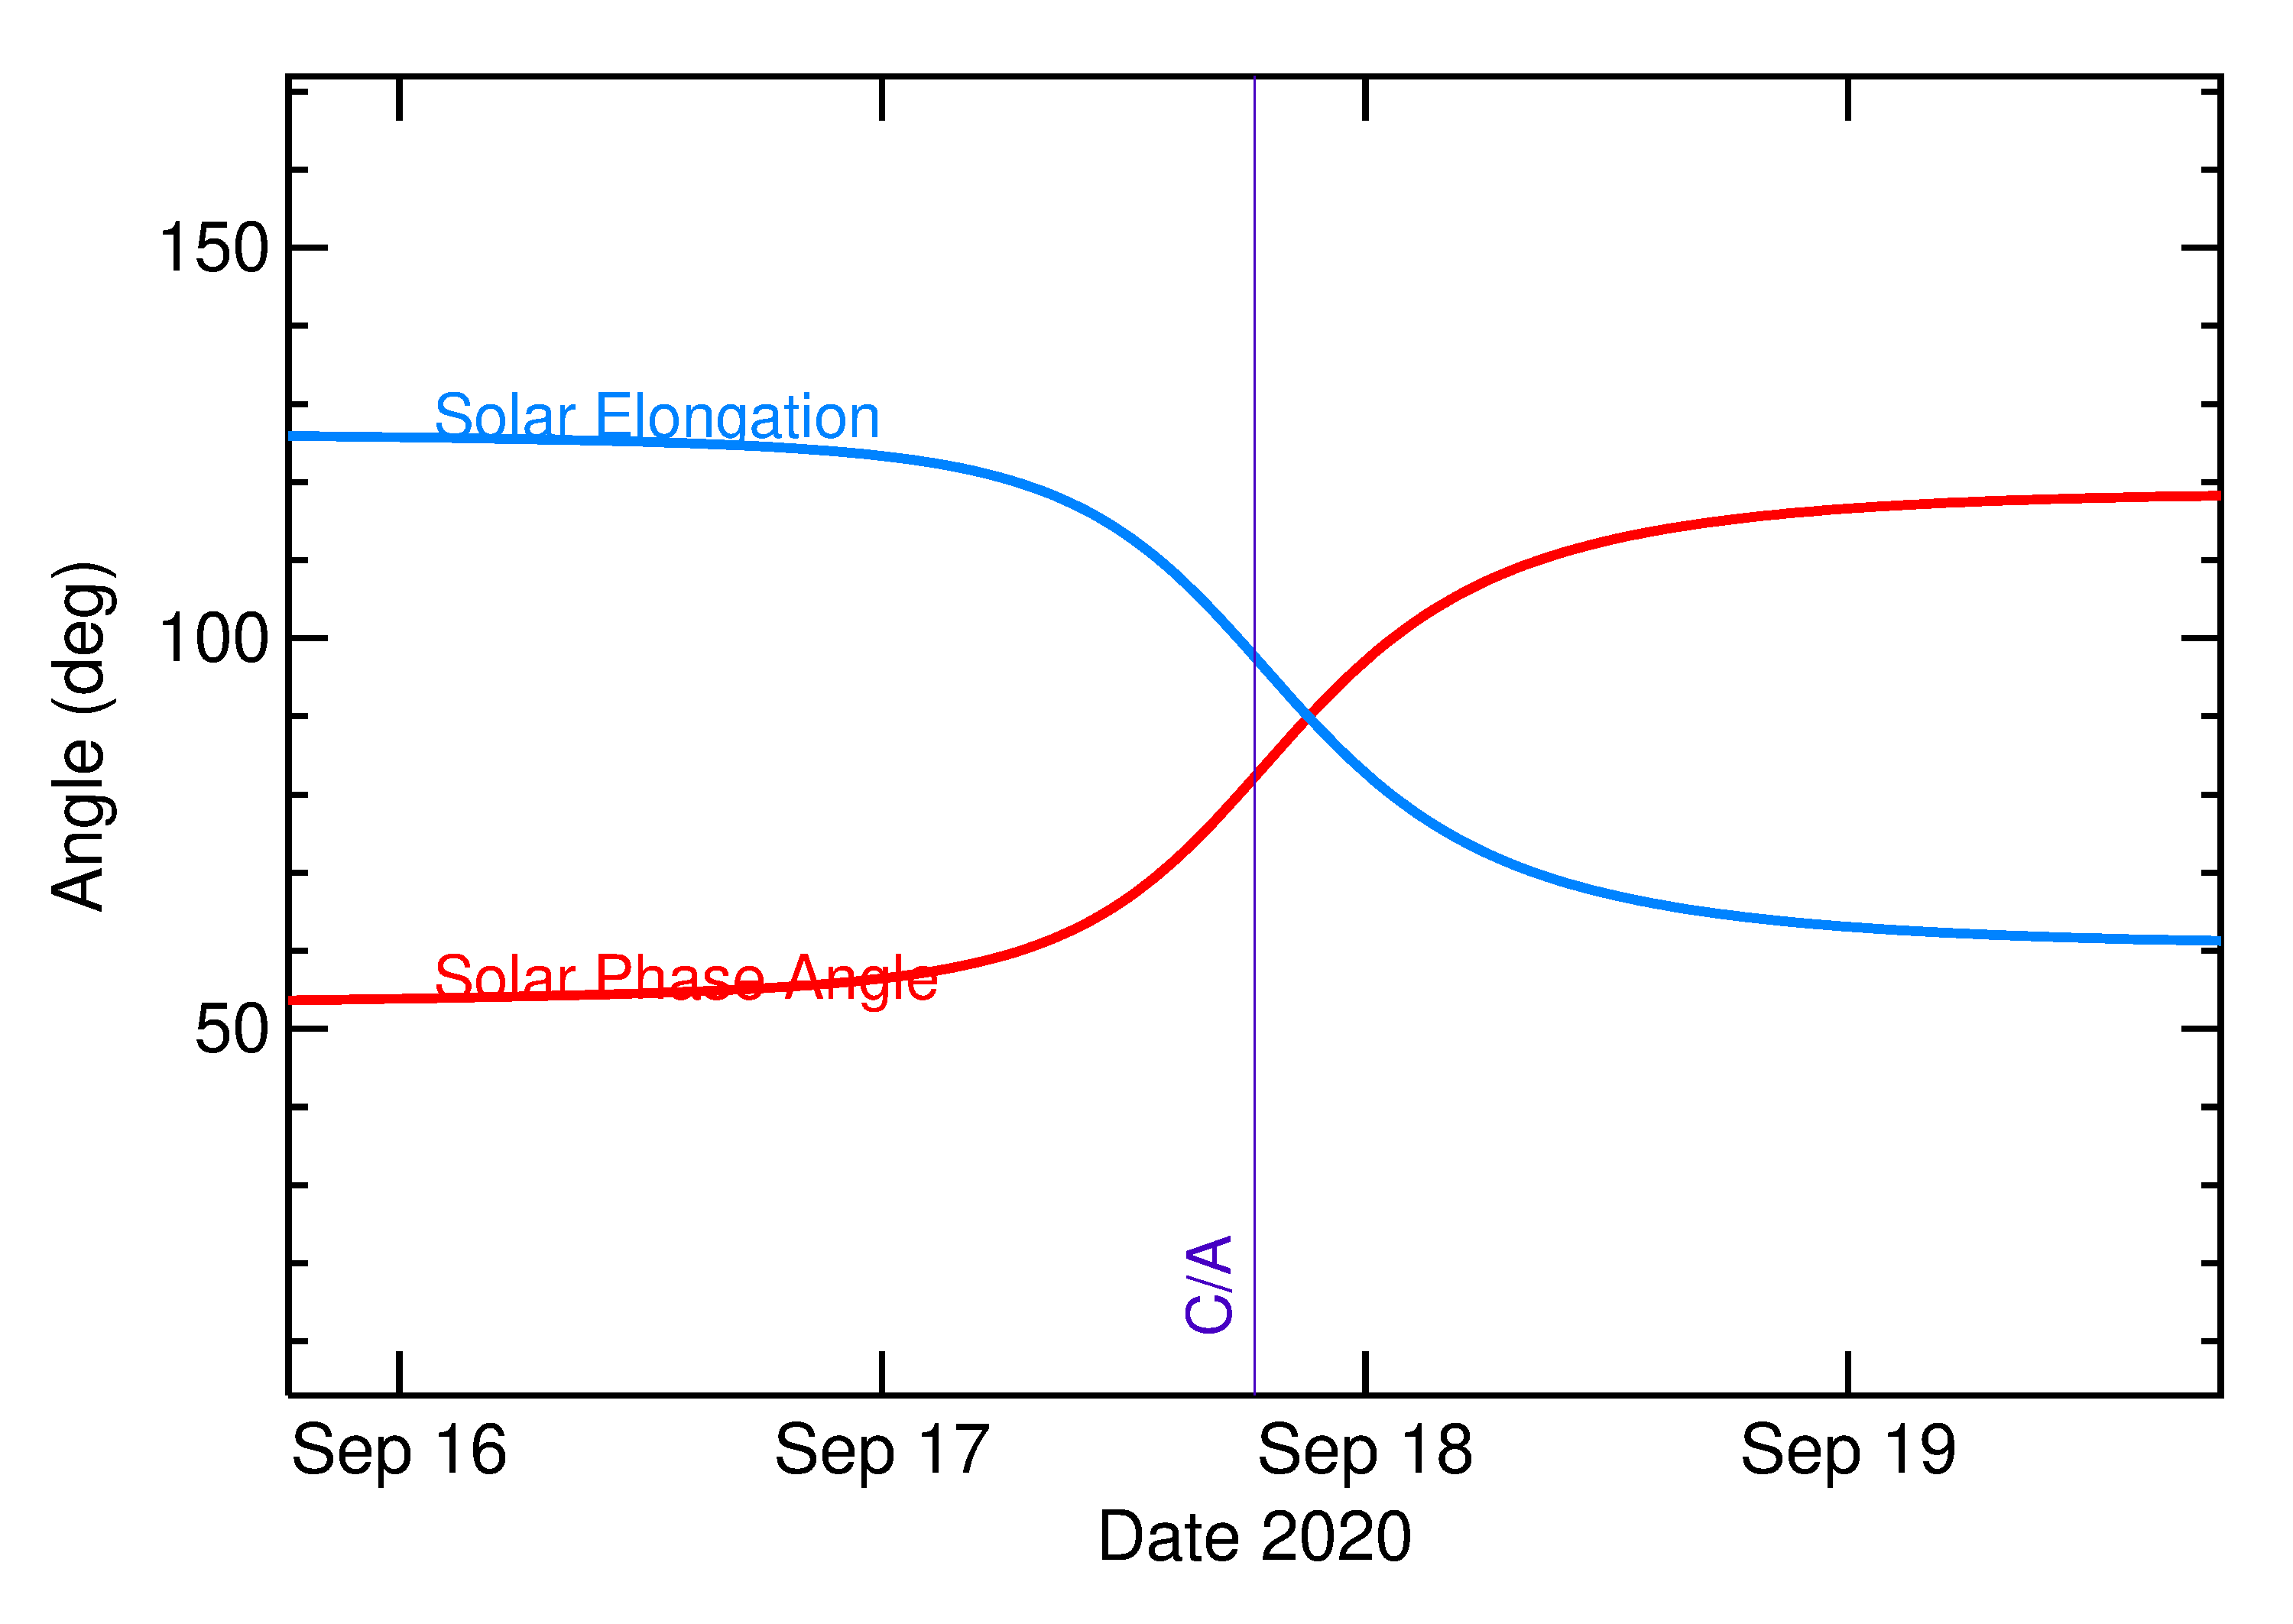 Solar Elongation and Solar Phase Angle of 2020 RZ6 in the days around closest approach